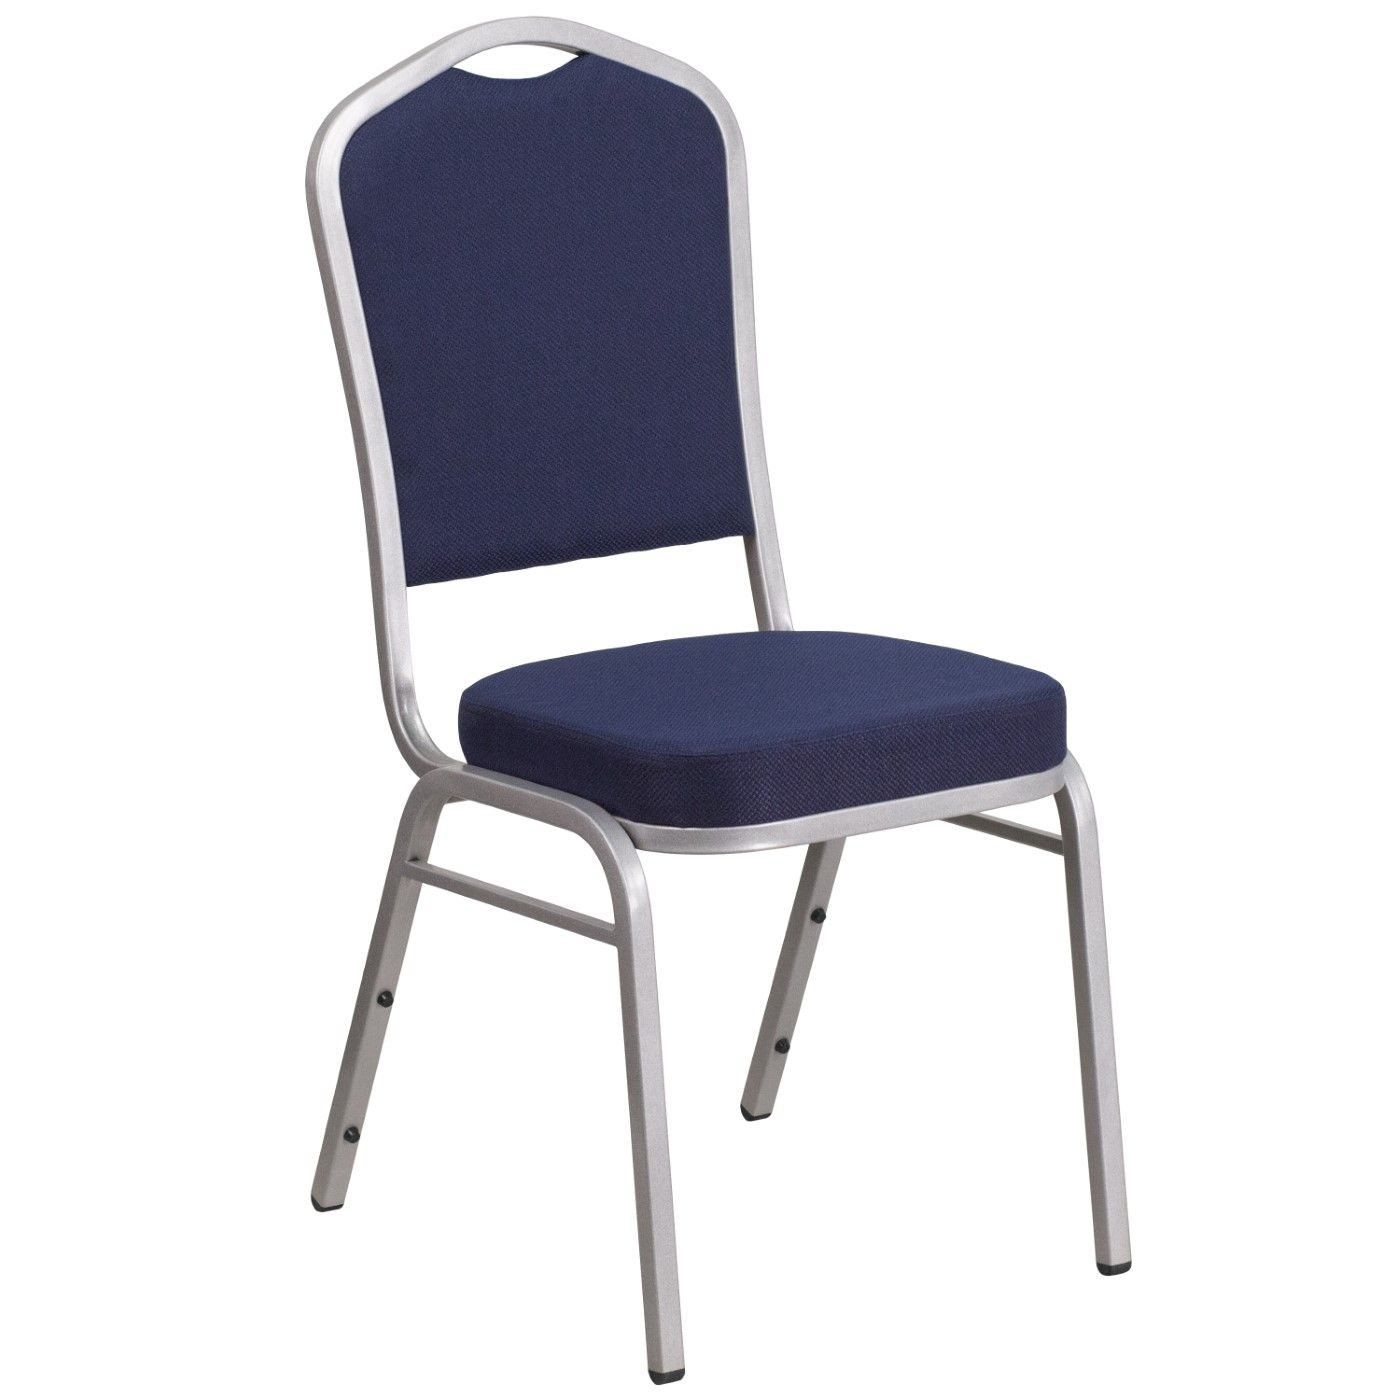 TOUGH ENOUGH Series Crown Back Stacking Banquet Chair in Navy Fabric - Silver Frame